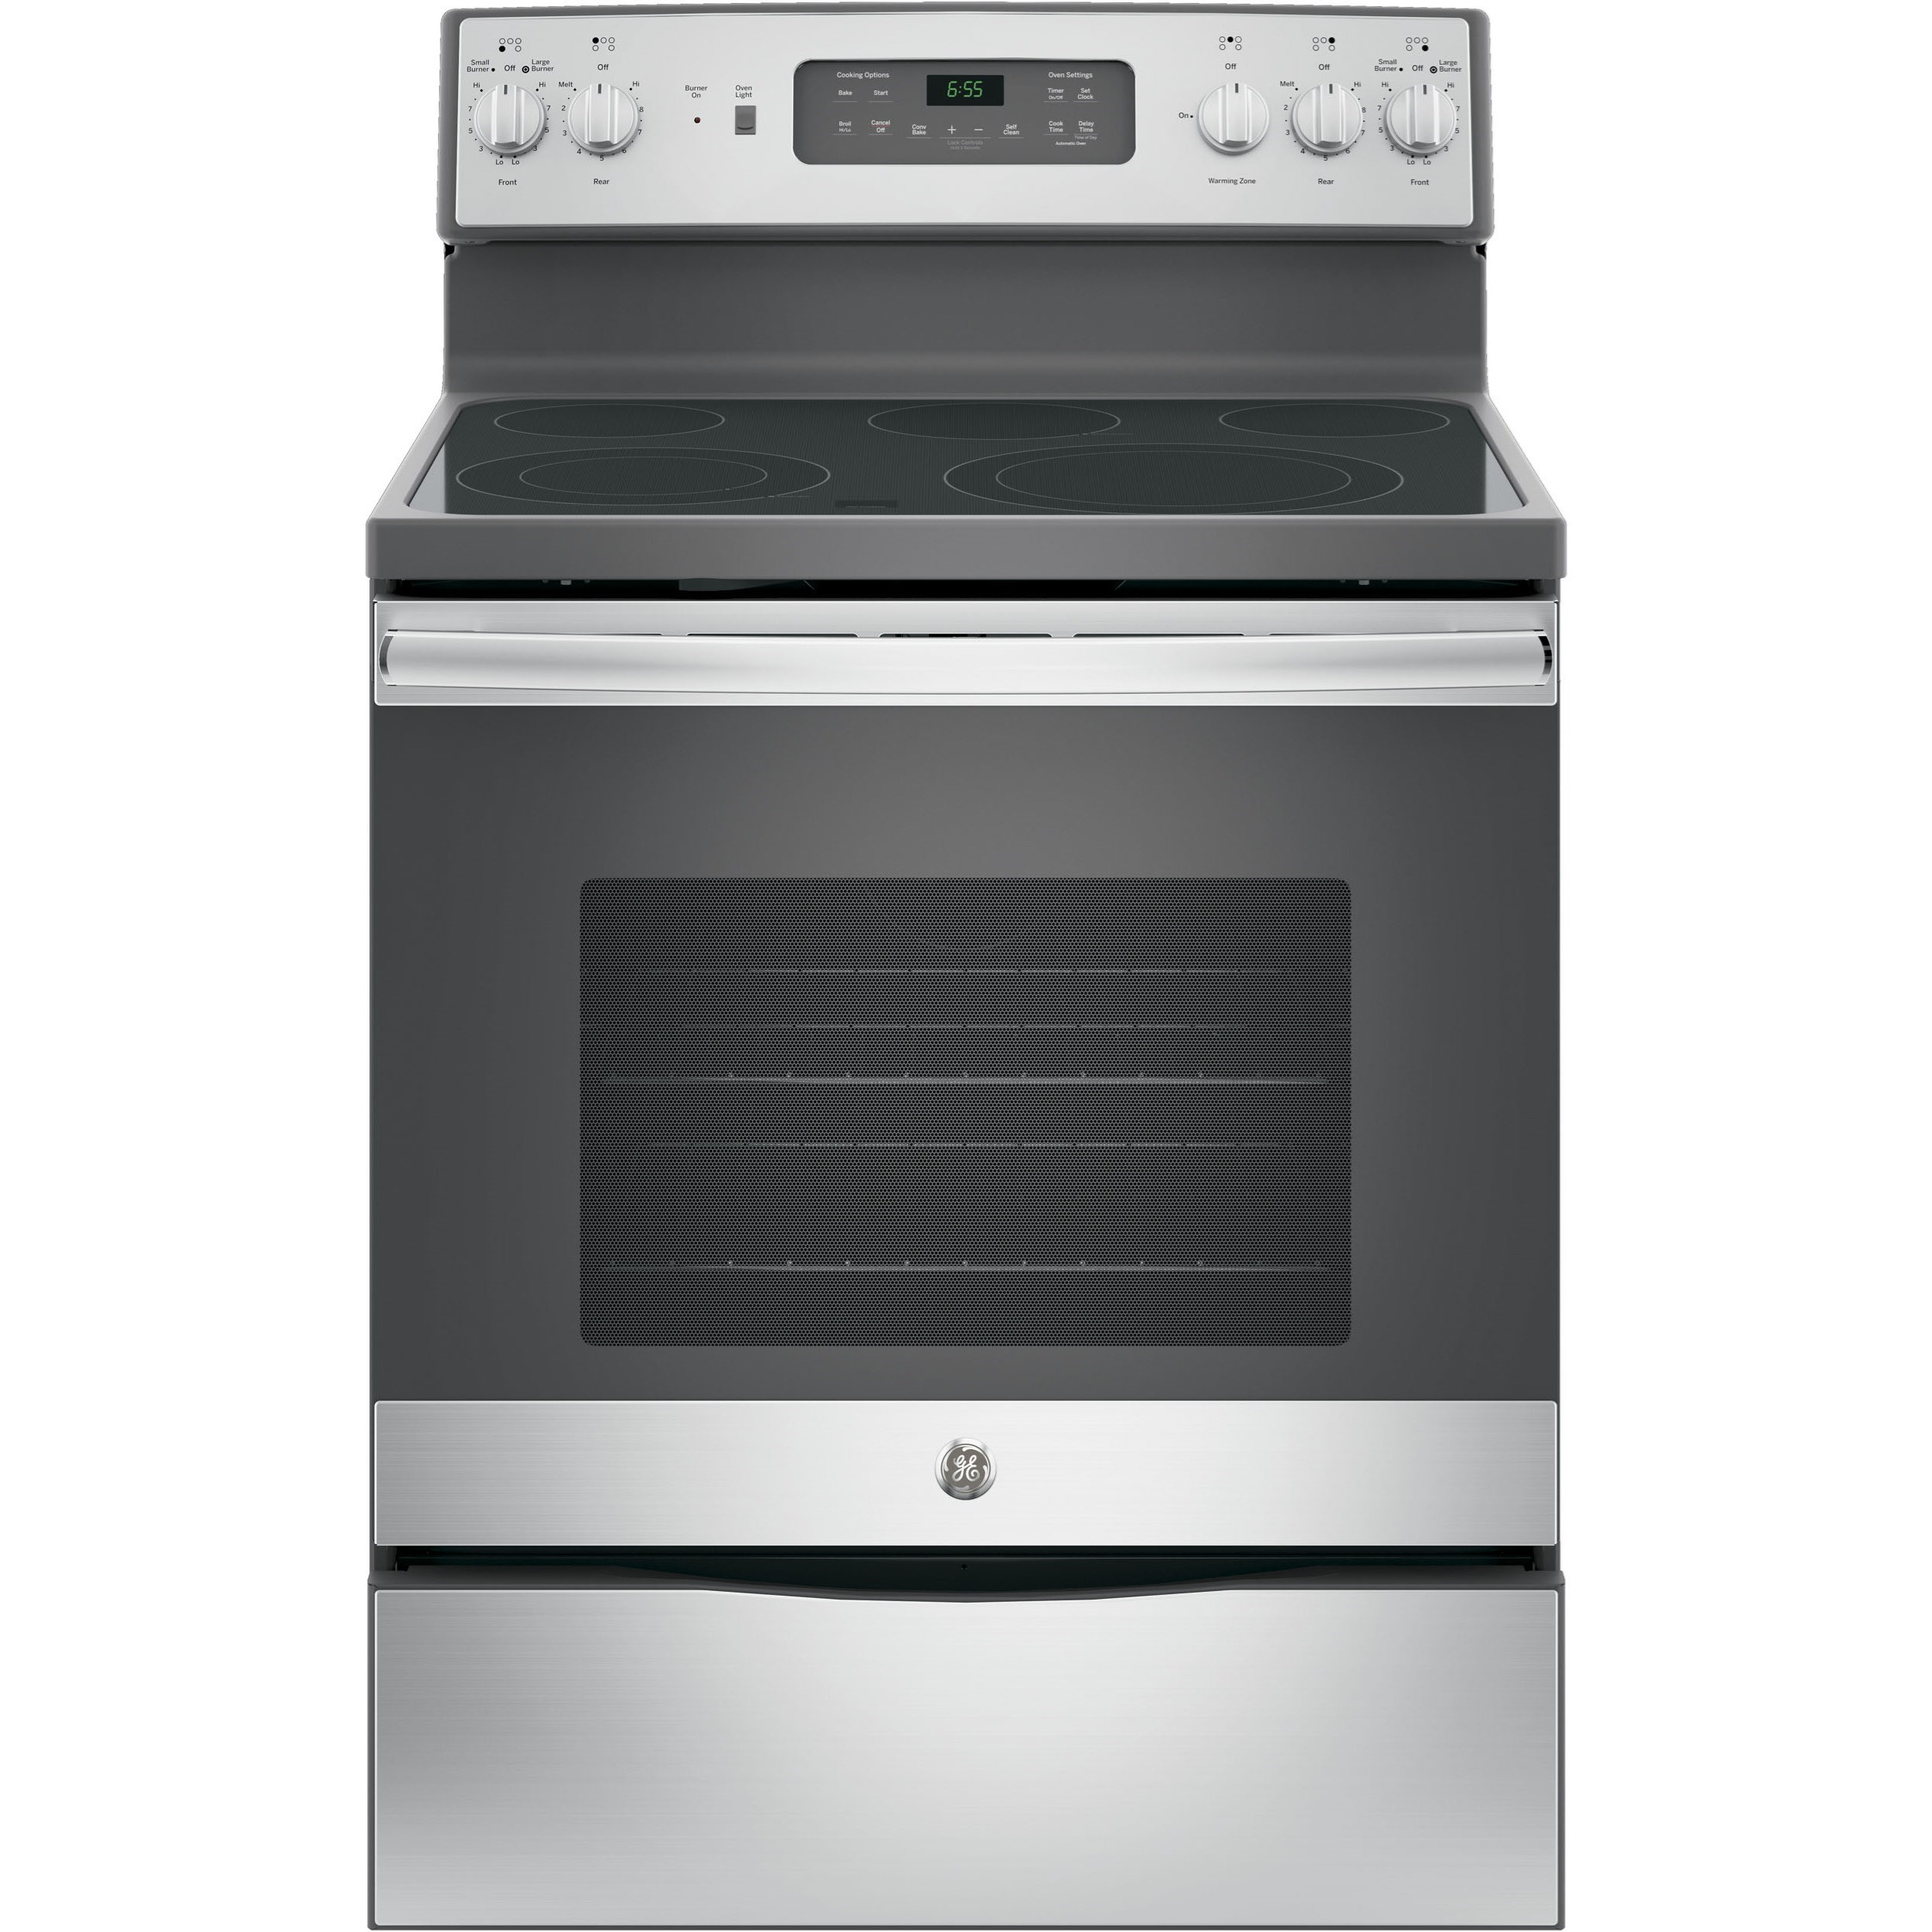 "GE Appliances GE Electric Ranges 30"" Free-Standing Convection Electric Range - Item Number: JB655SKSS"